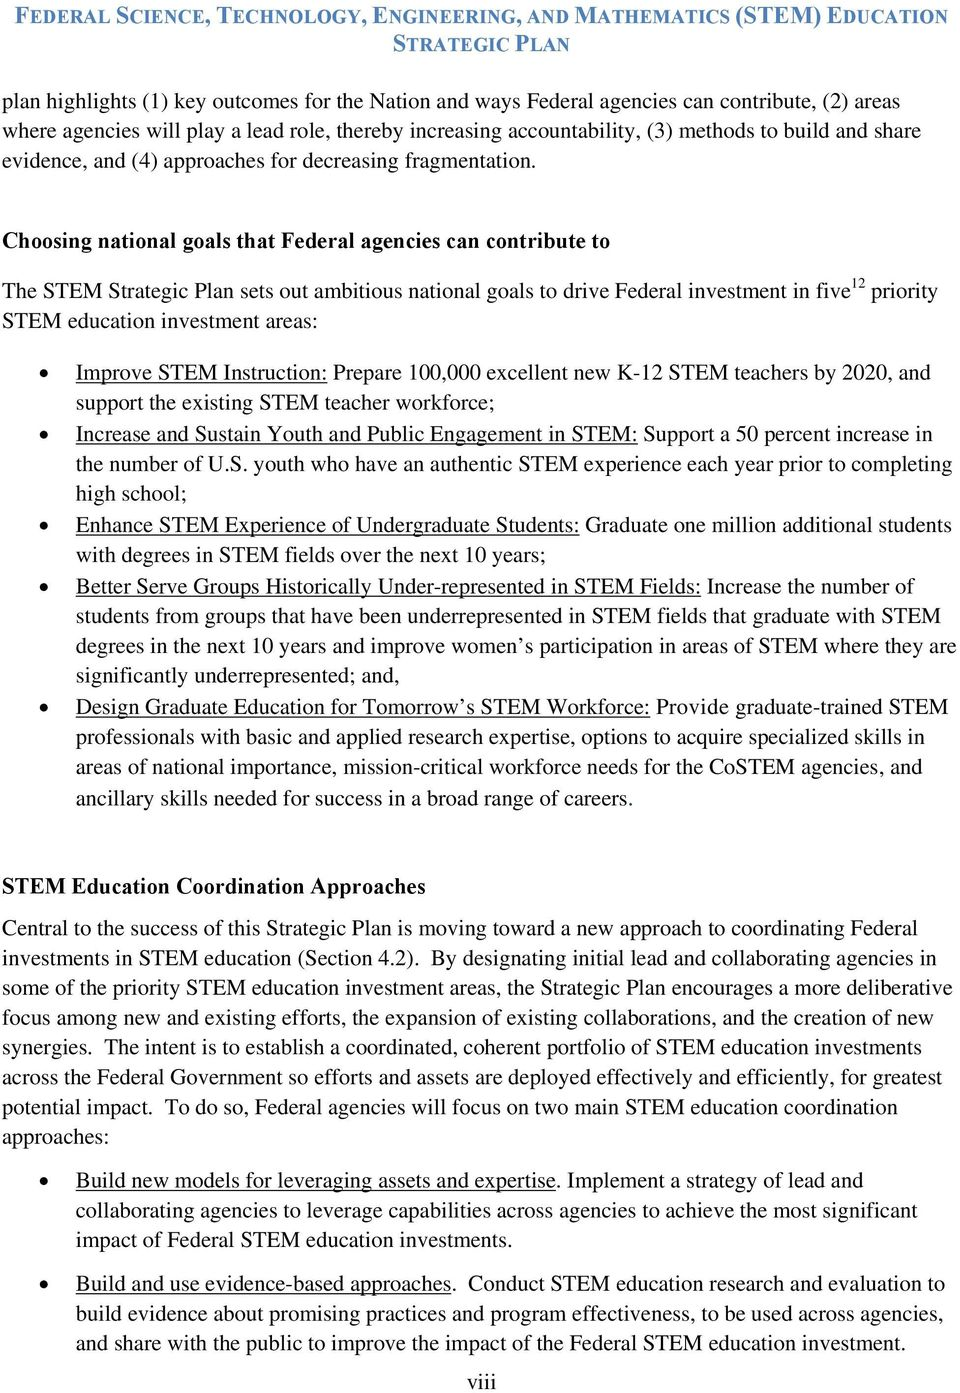 Choosing national goals that Federal agencies can contribute to The STEM Strategic Plan sets out ambitious national goals to drive Federal investment in five 12 priority STEM education investment